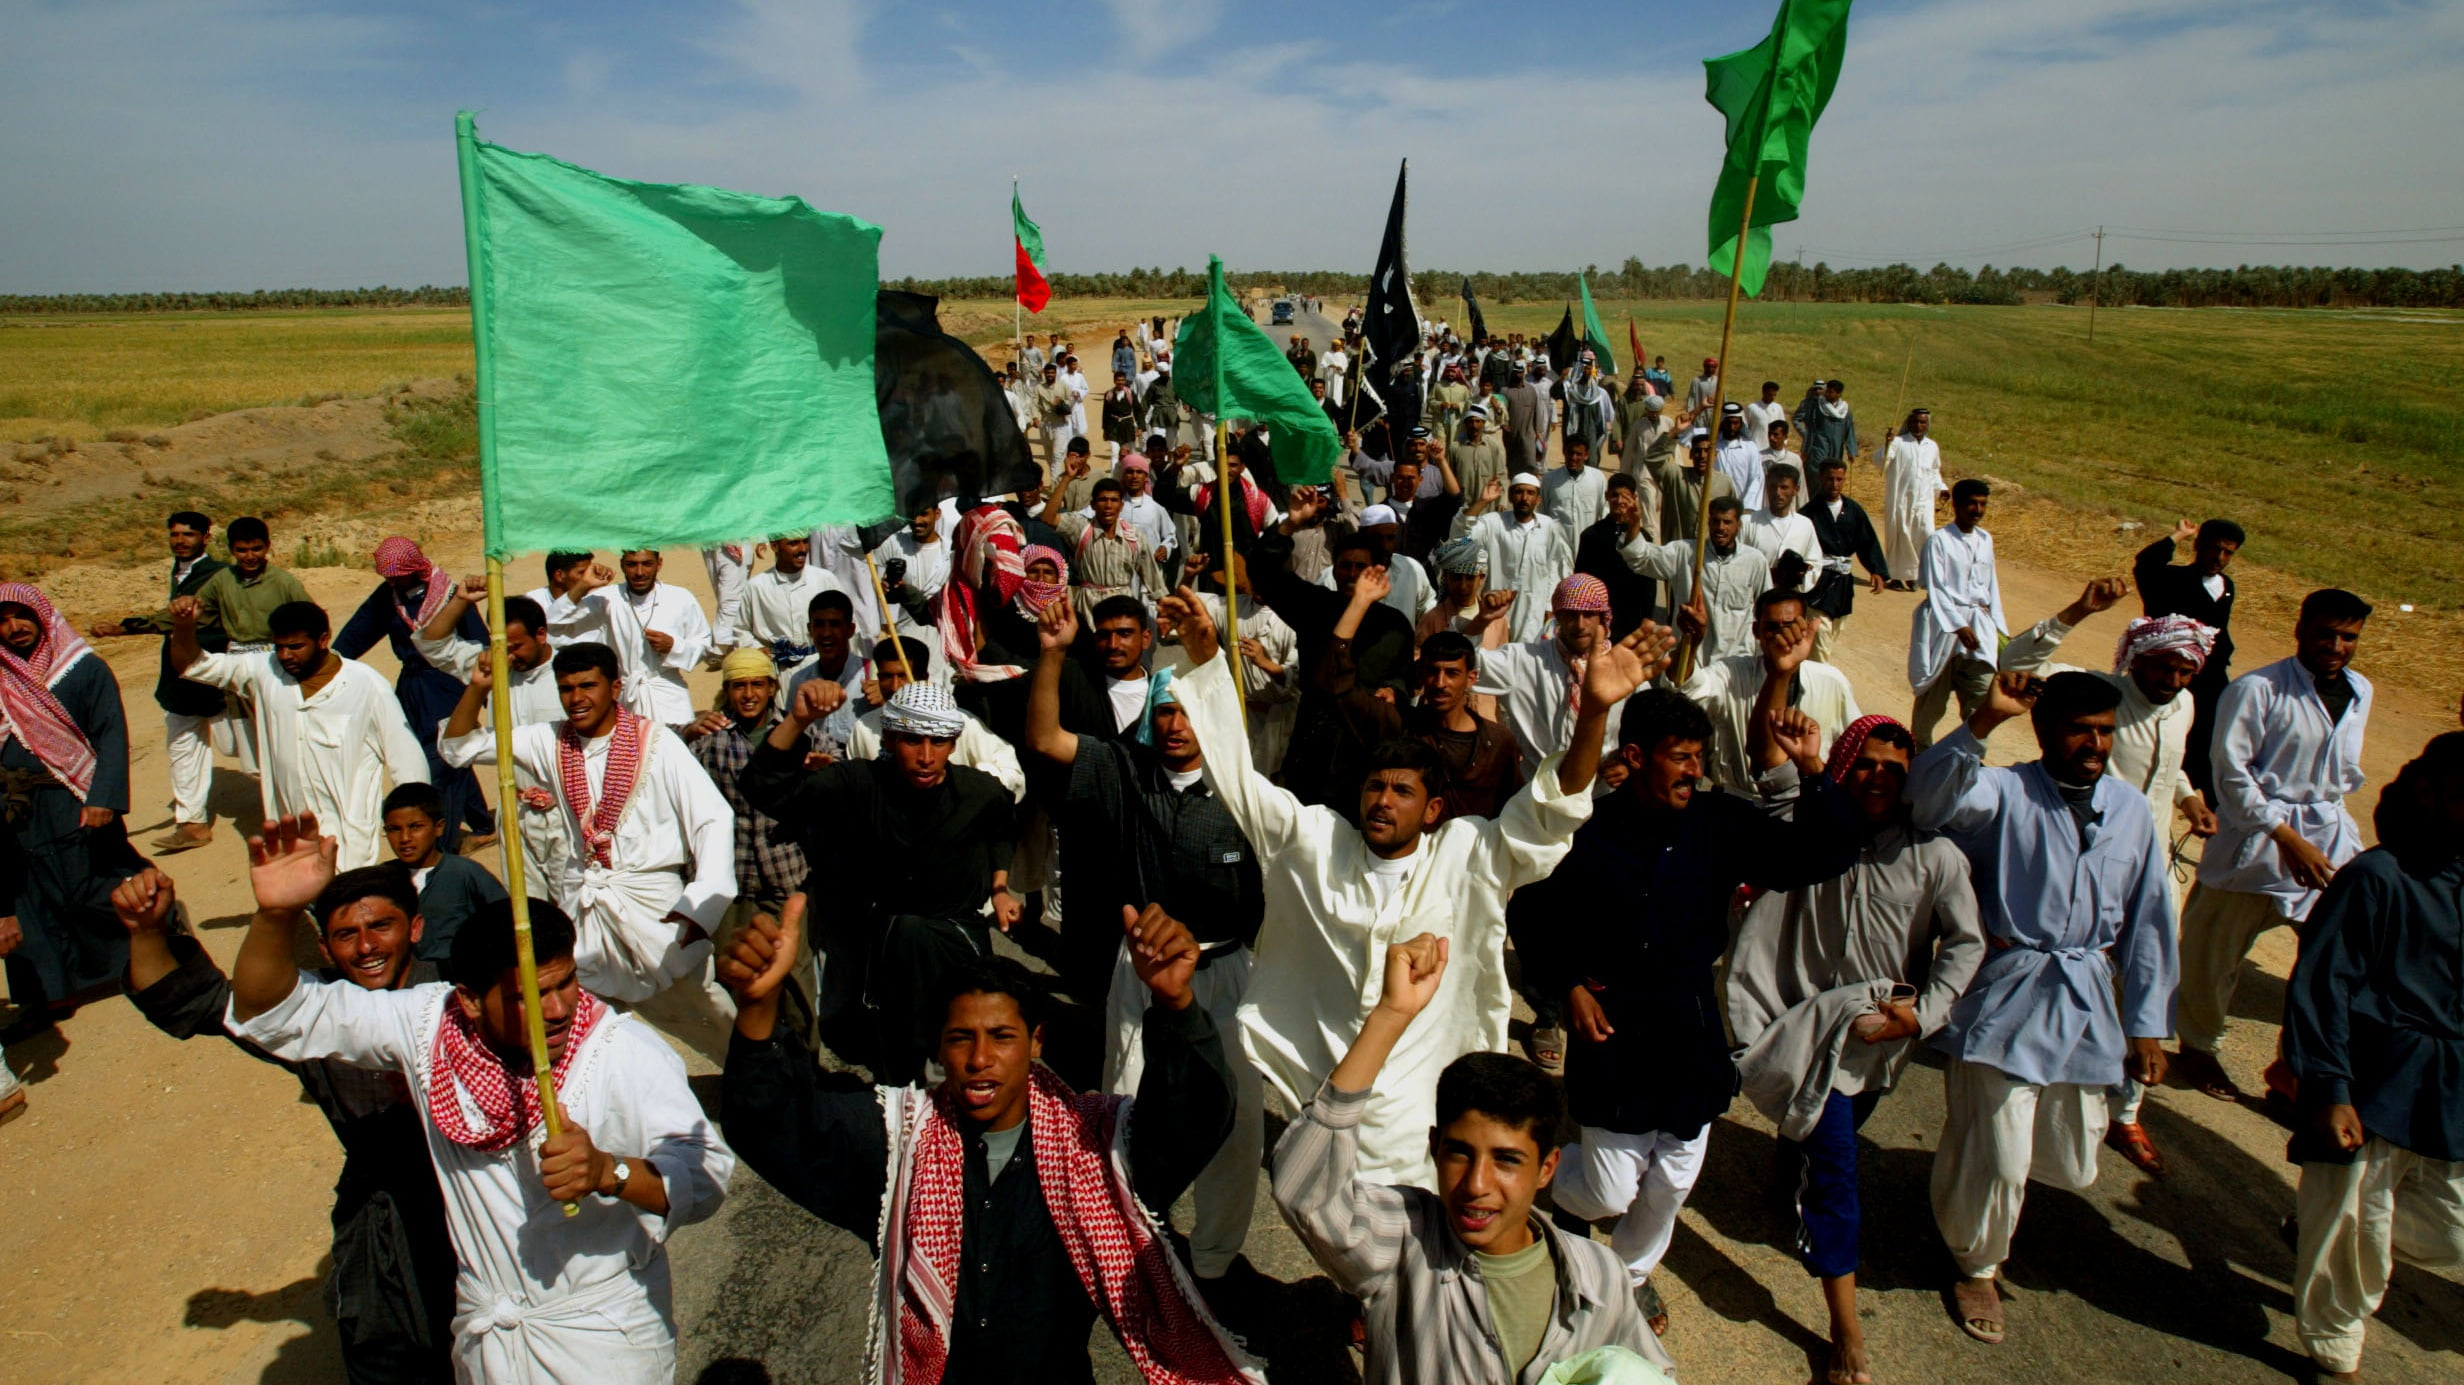 IRAQI SHIITE MEN WALK TO NAJAF FOR PILGRIMAGE FOR THE FIRST TIME IN 26YEARS.